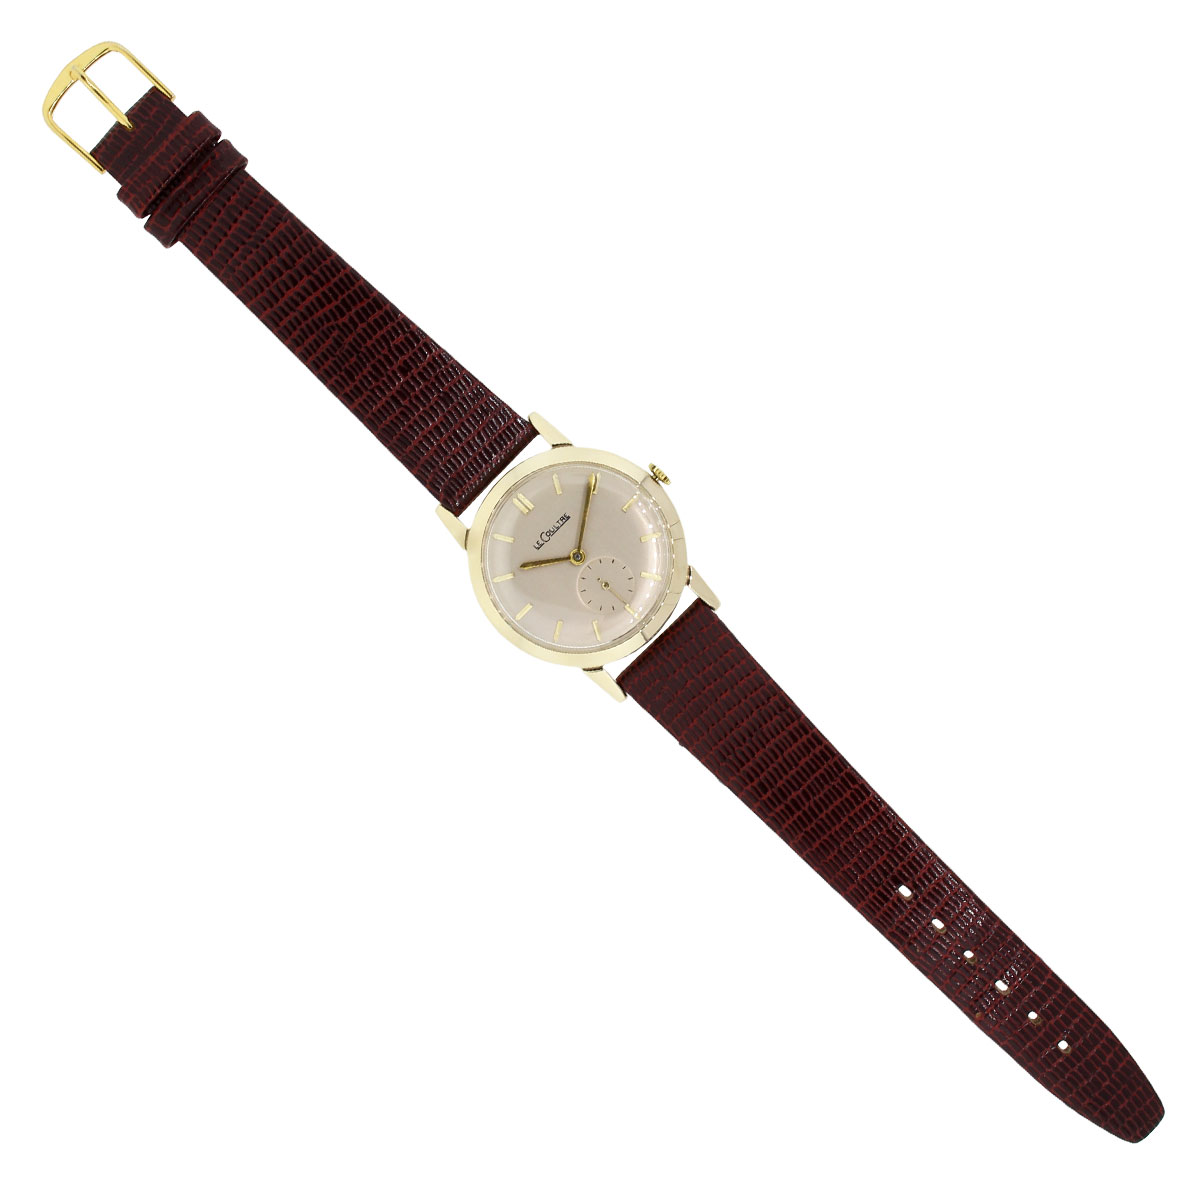 LeCoultre 14k Leather Strap Watch